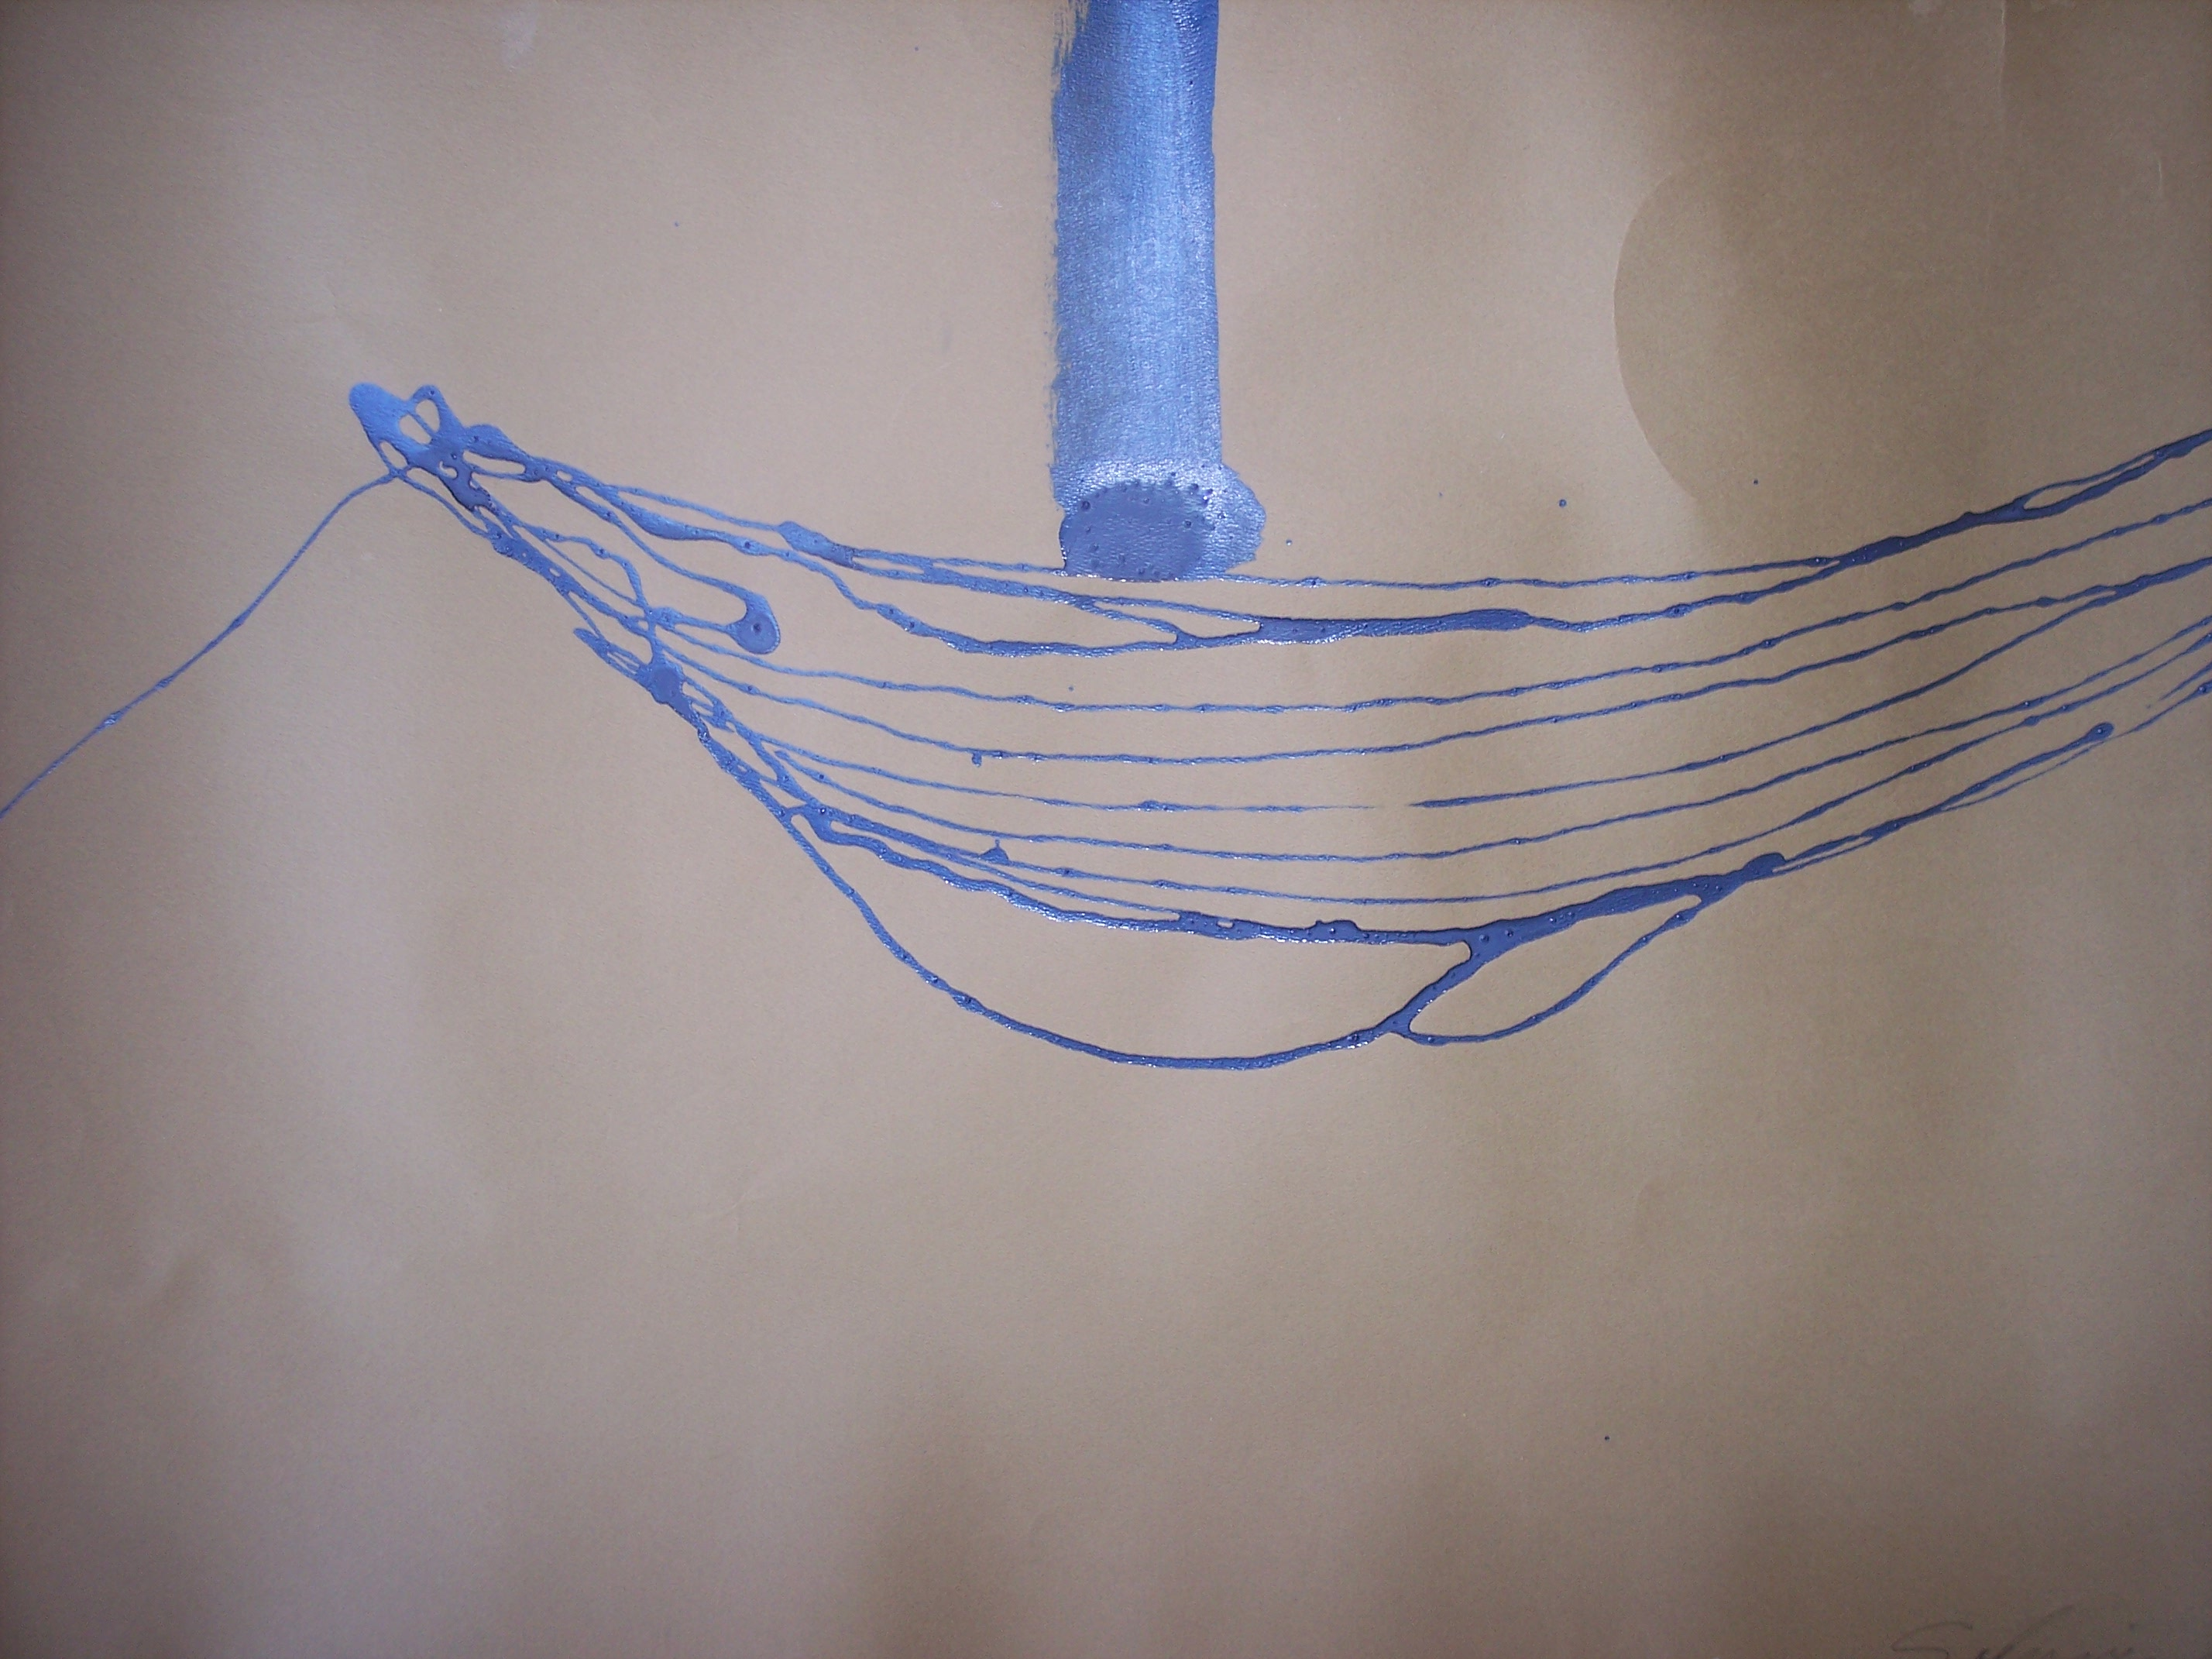 Bruce Sodervick The Sodus Art Bank Marine Wiring Diagrams Sailboat Mast Sheer Lines Lacquer 30x42 Inches 035